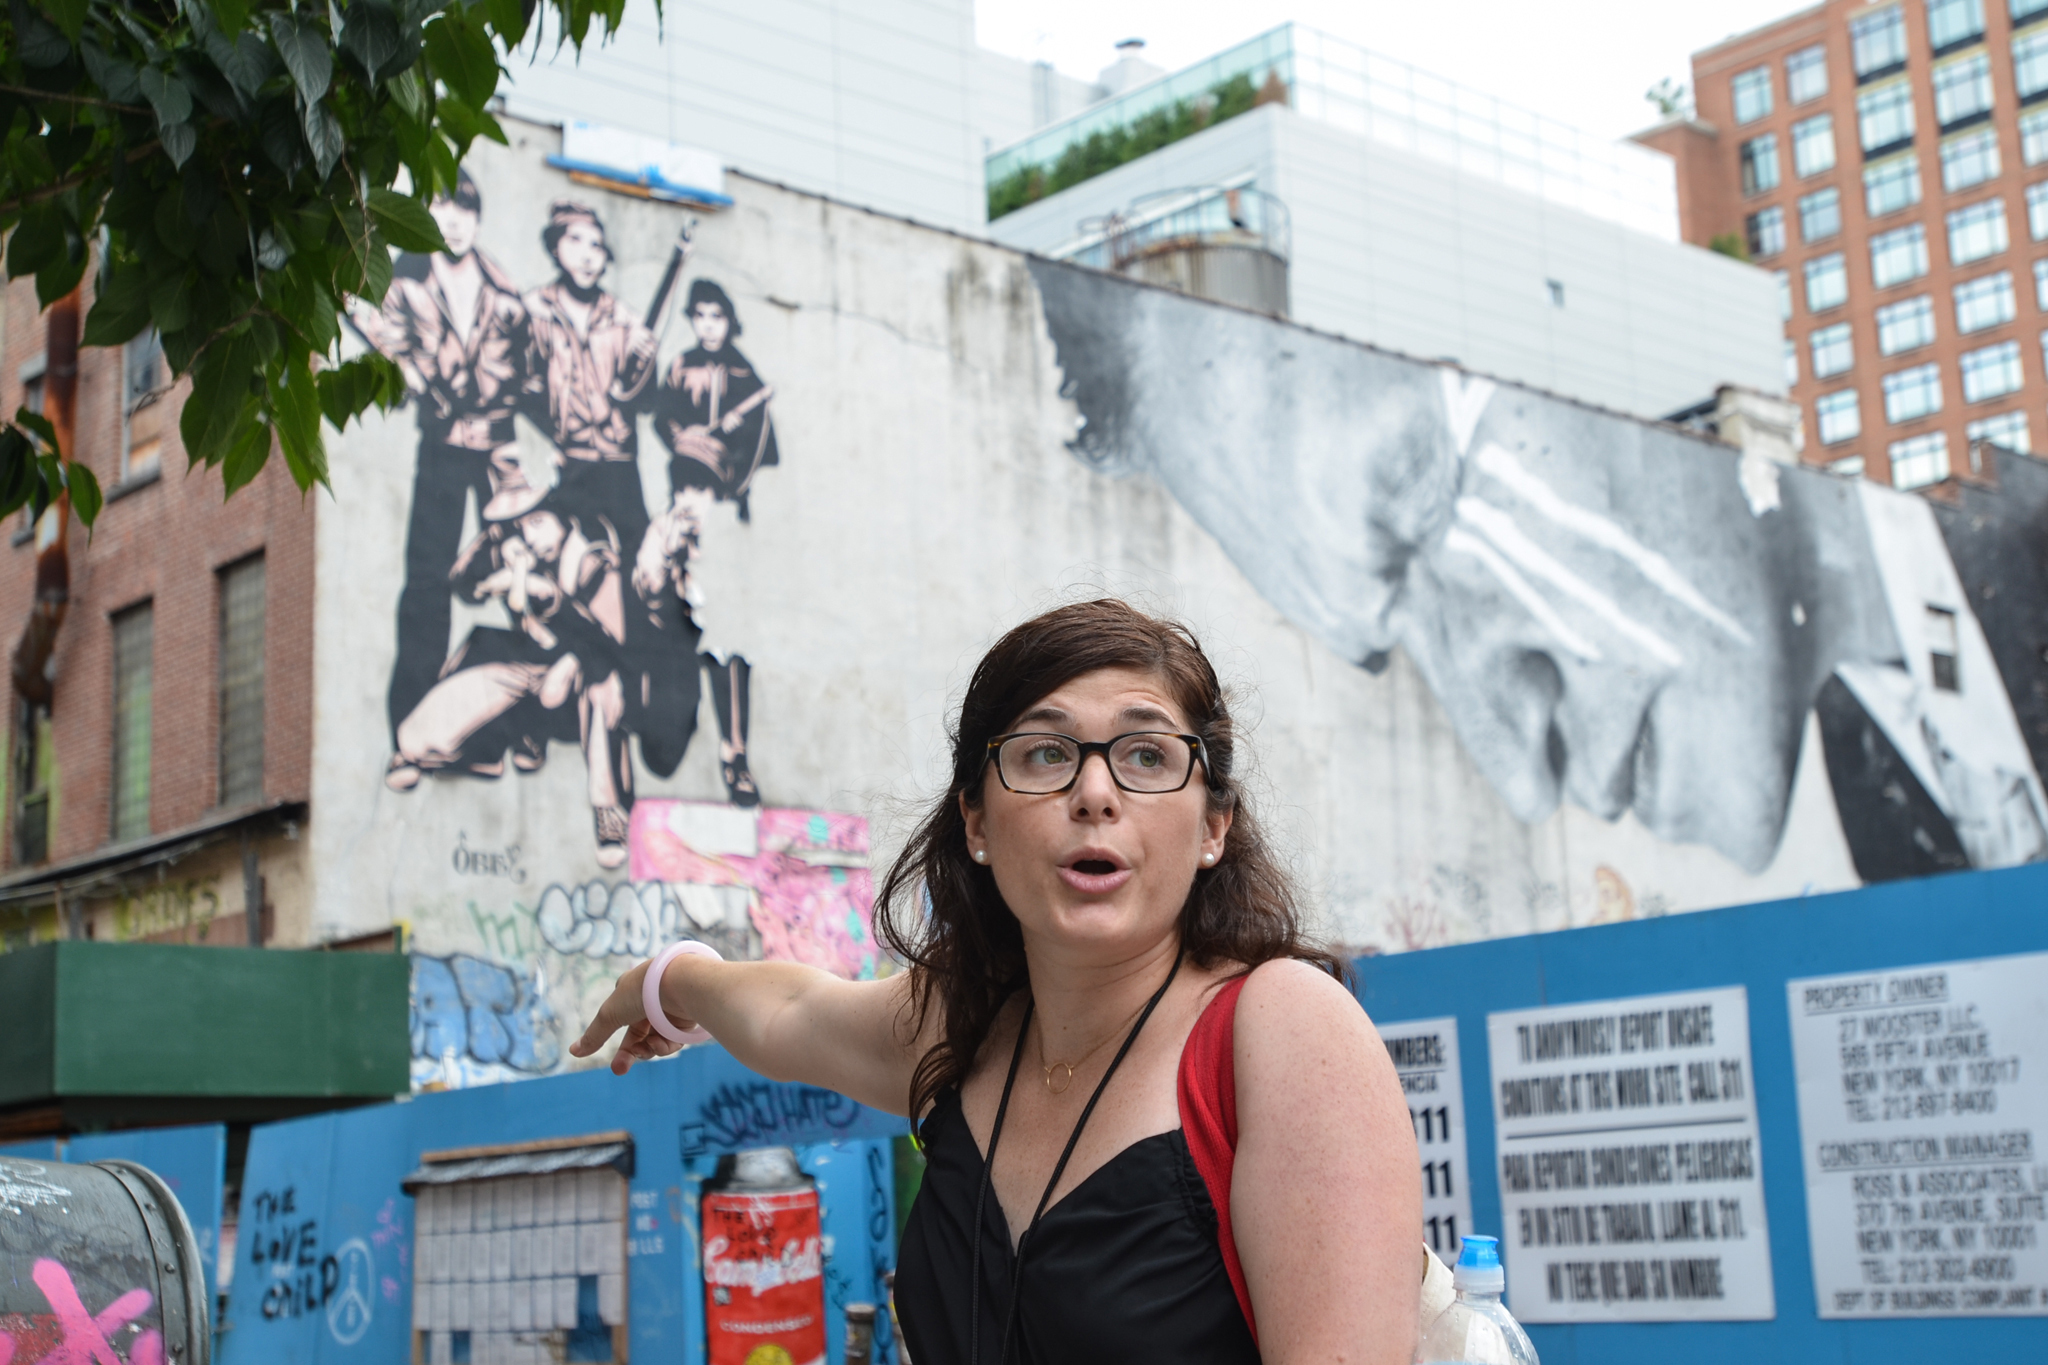 Street art tours: See graffiti on these New York walking tours